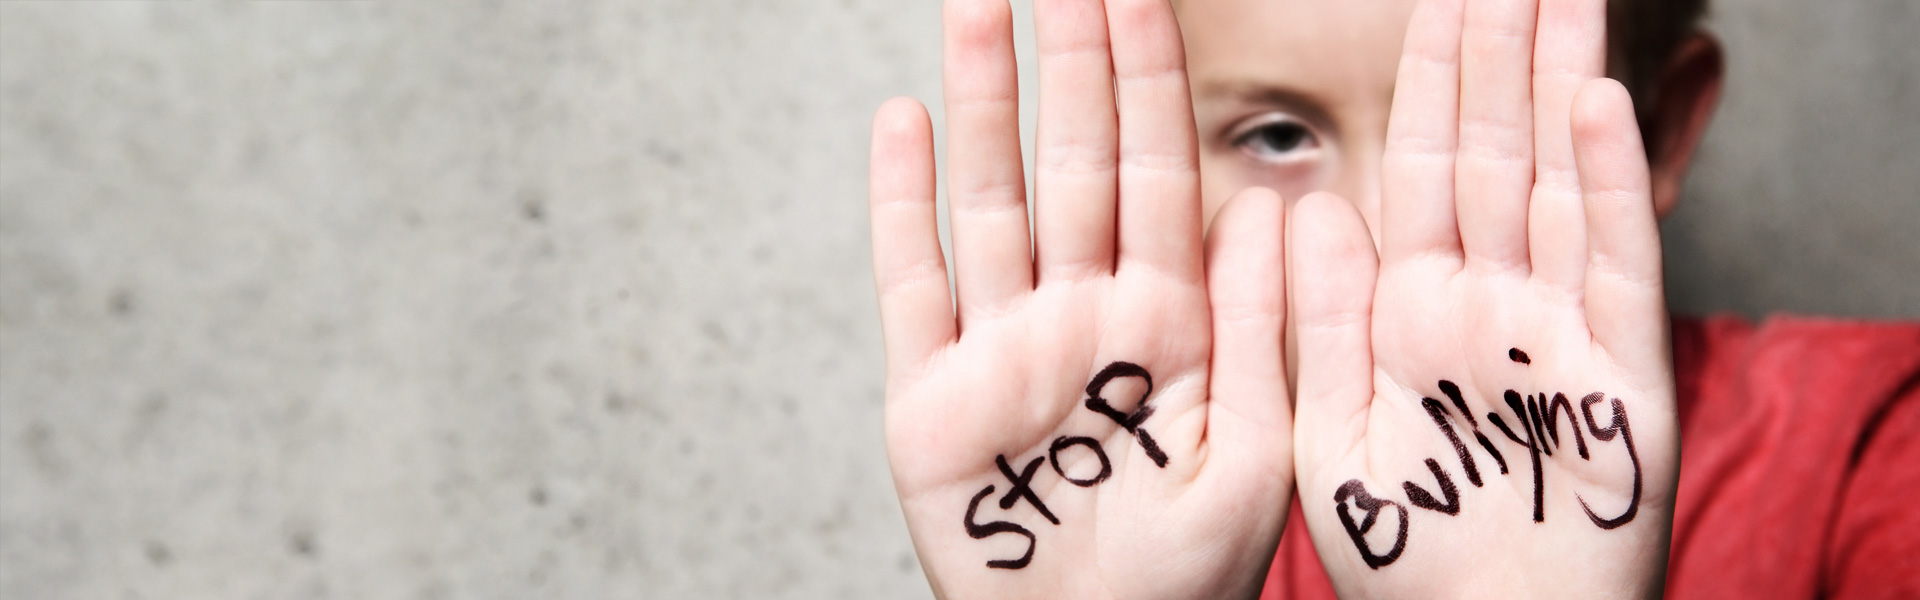 Bullying and Violence Prevention